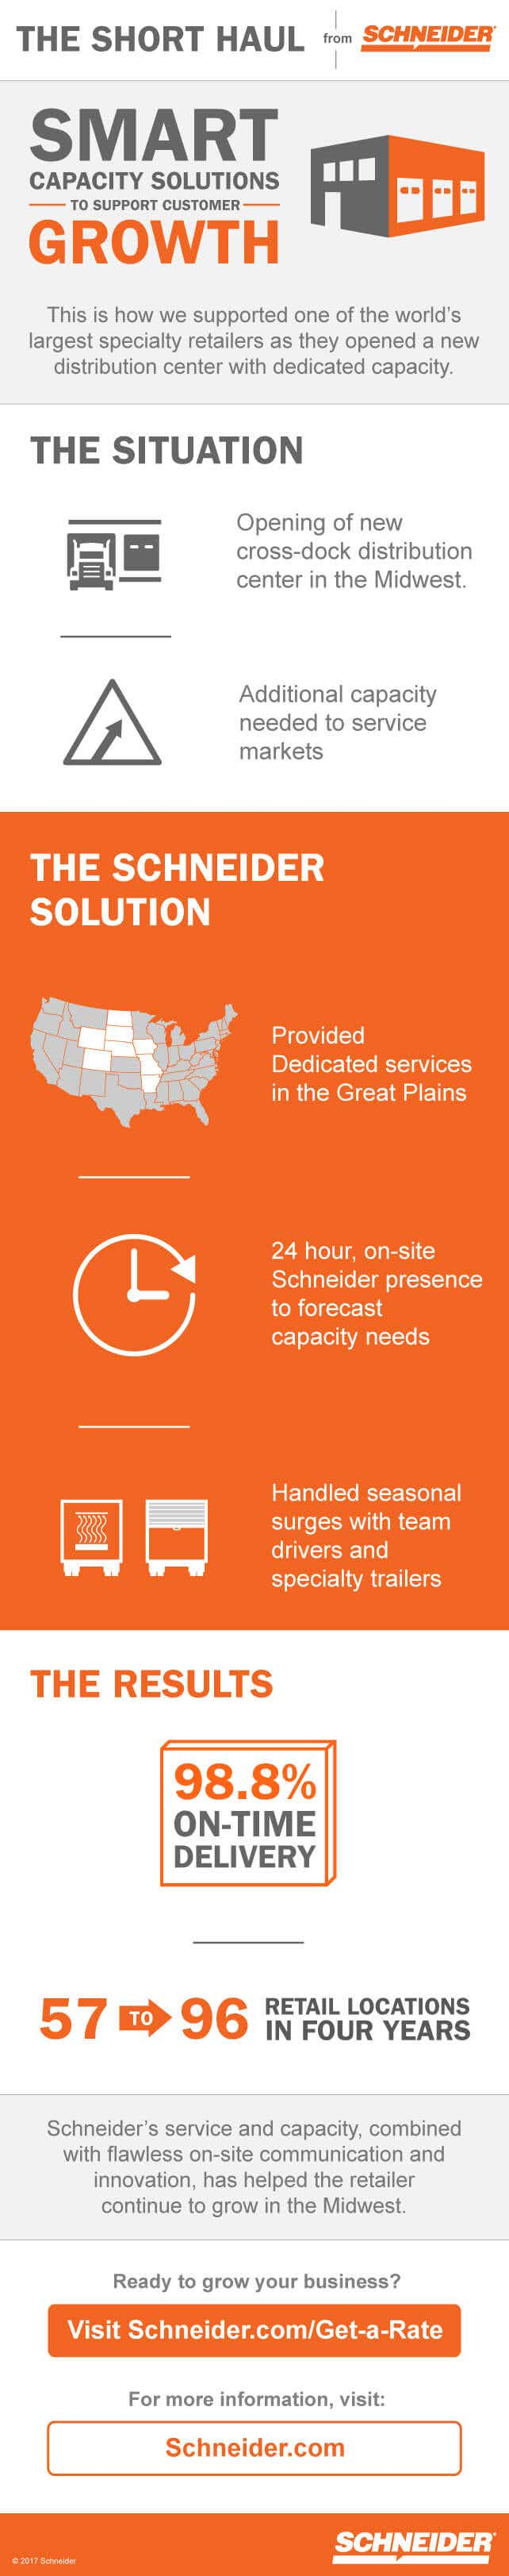 Smart Capacity Solutions Infographic